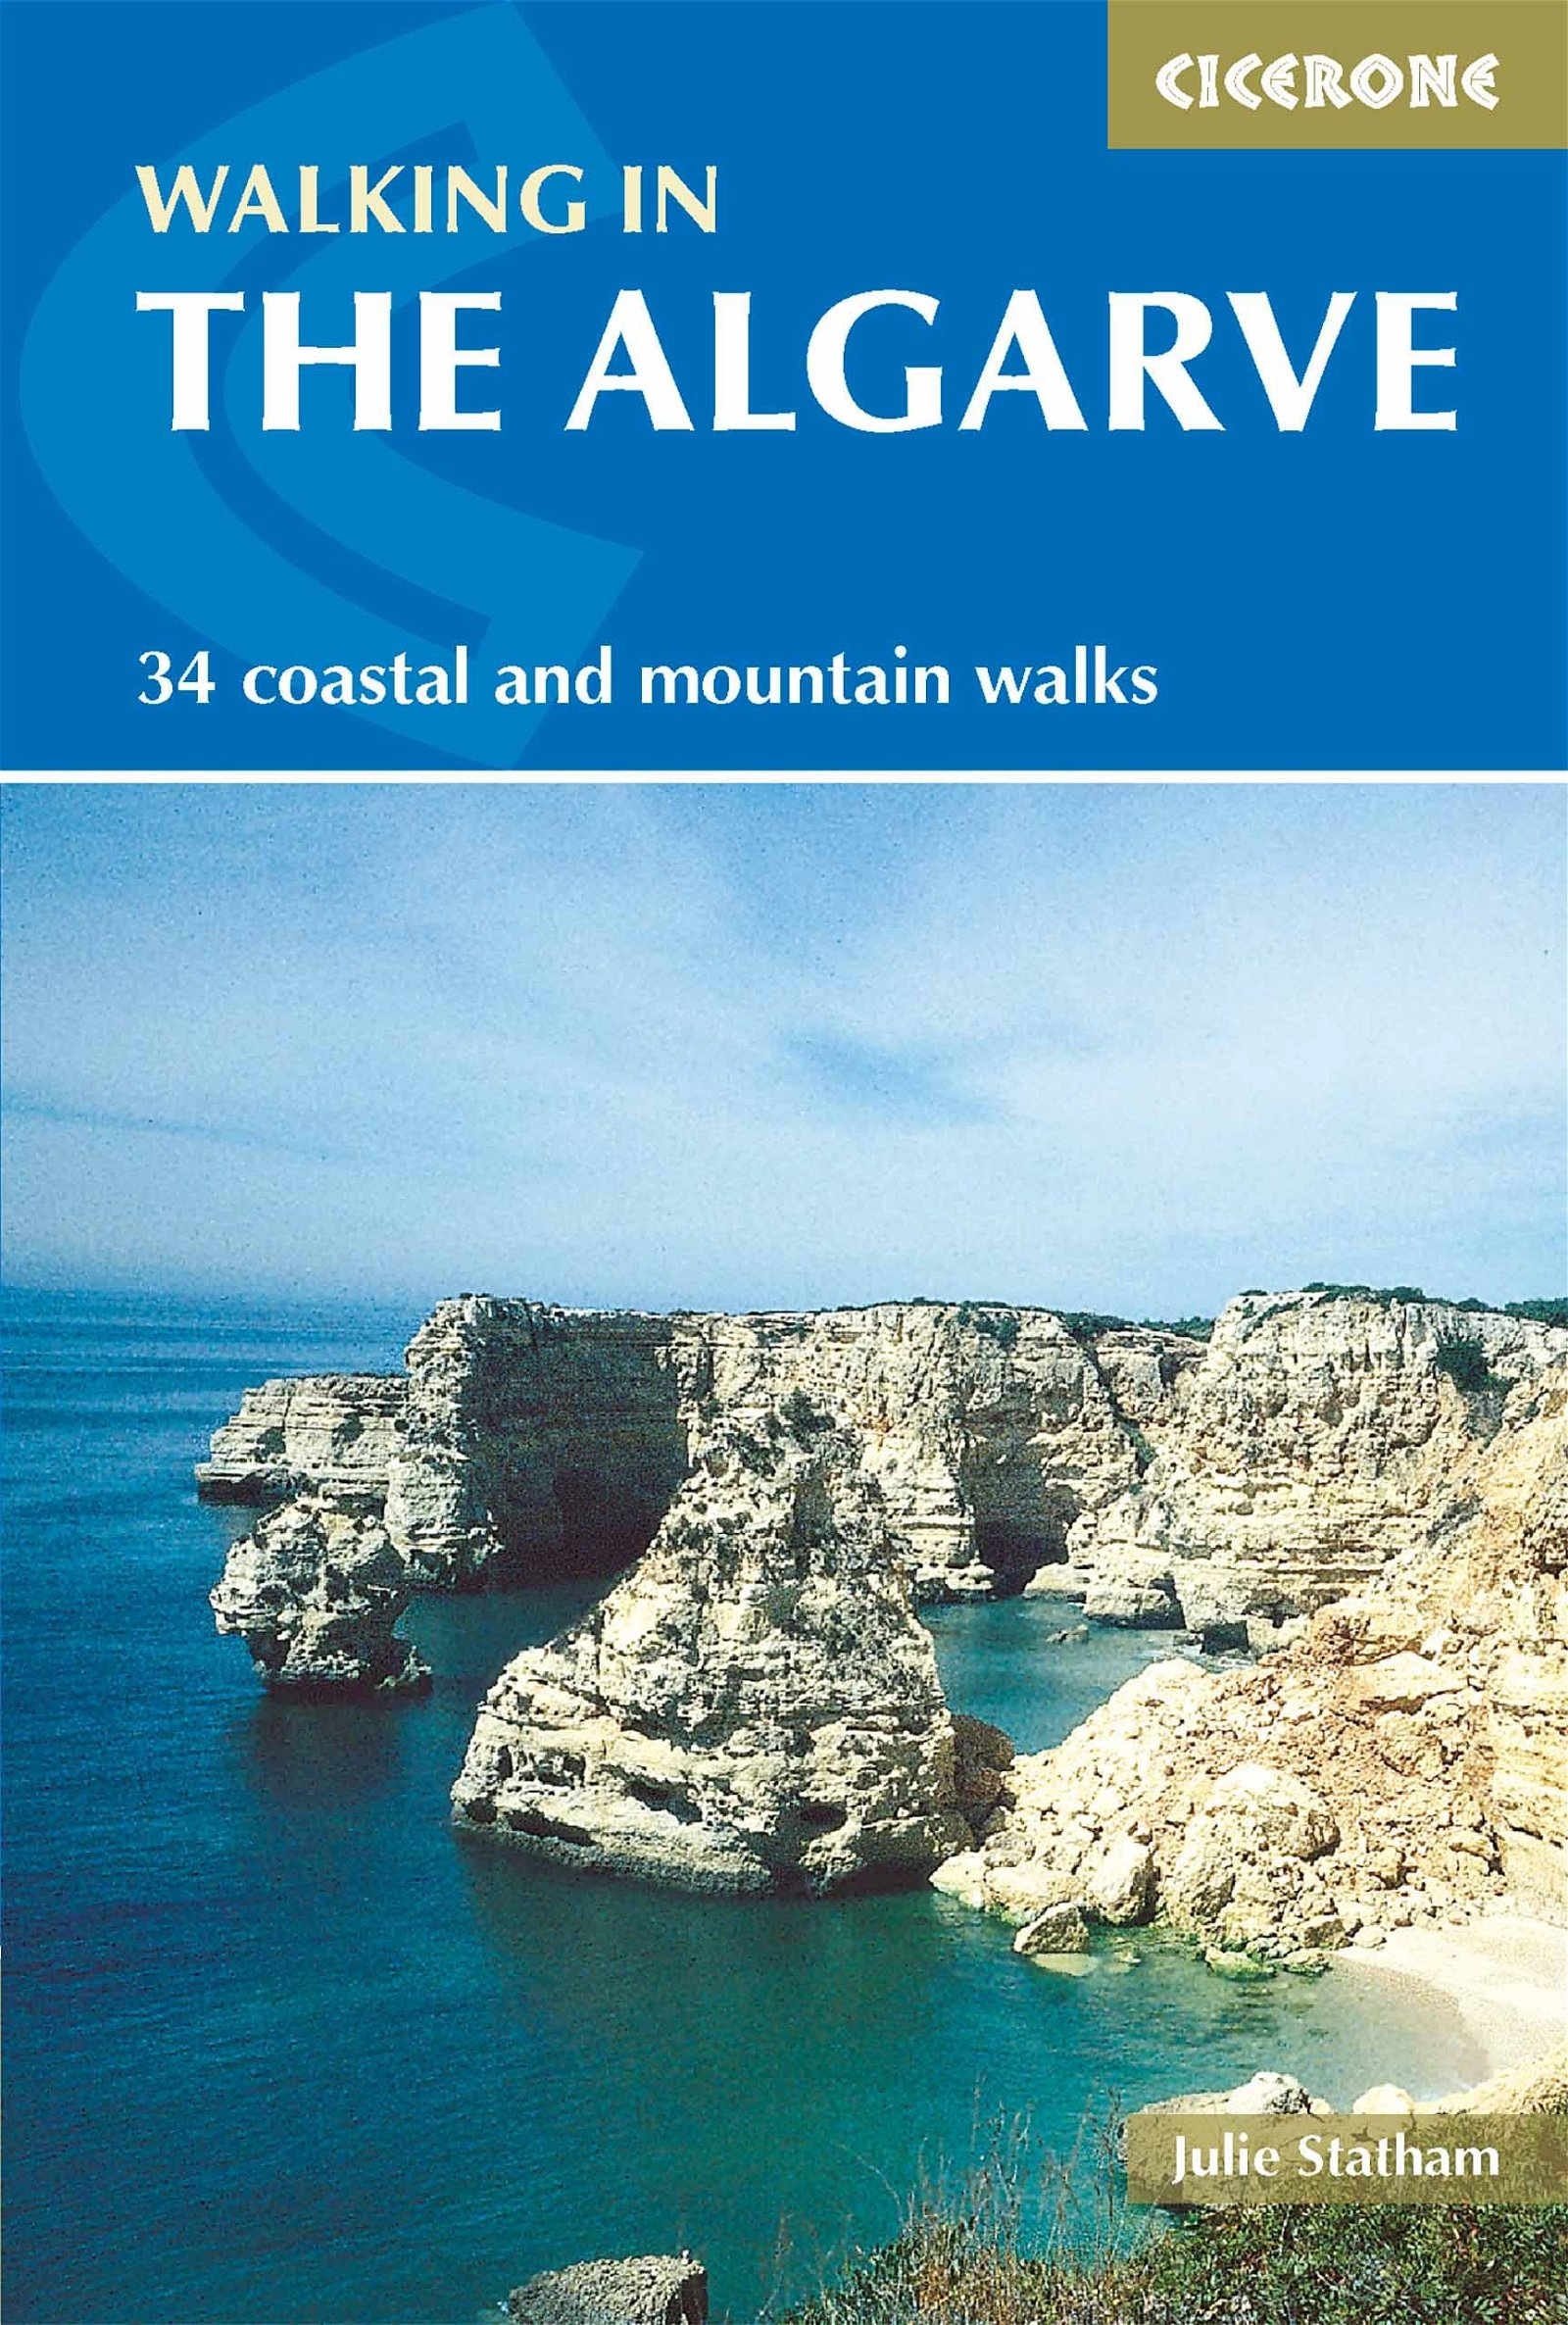 Walking in the Algarve 9781852844370 June Parker Cicerone Press   Wandelgidsen Zuid-Portugal, Algarve